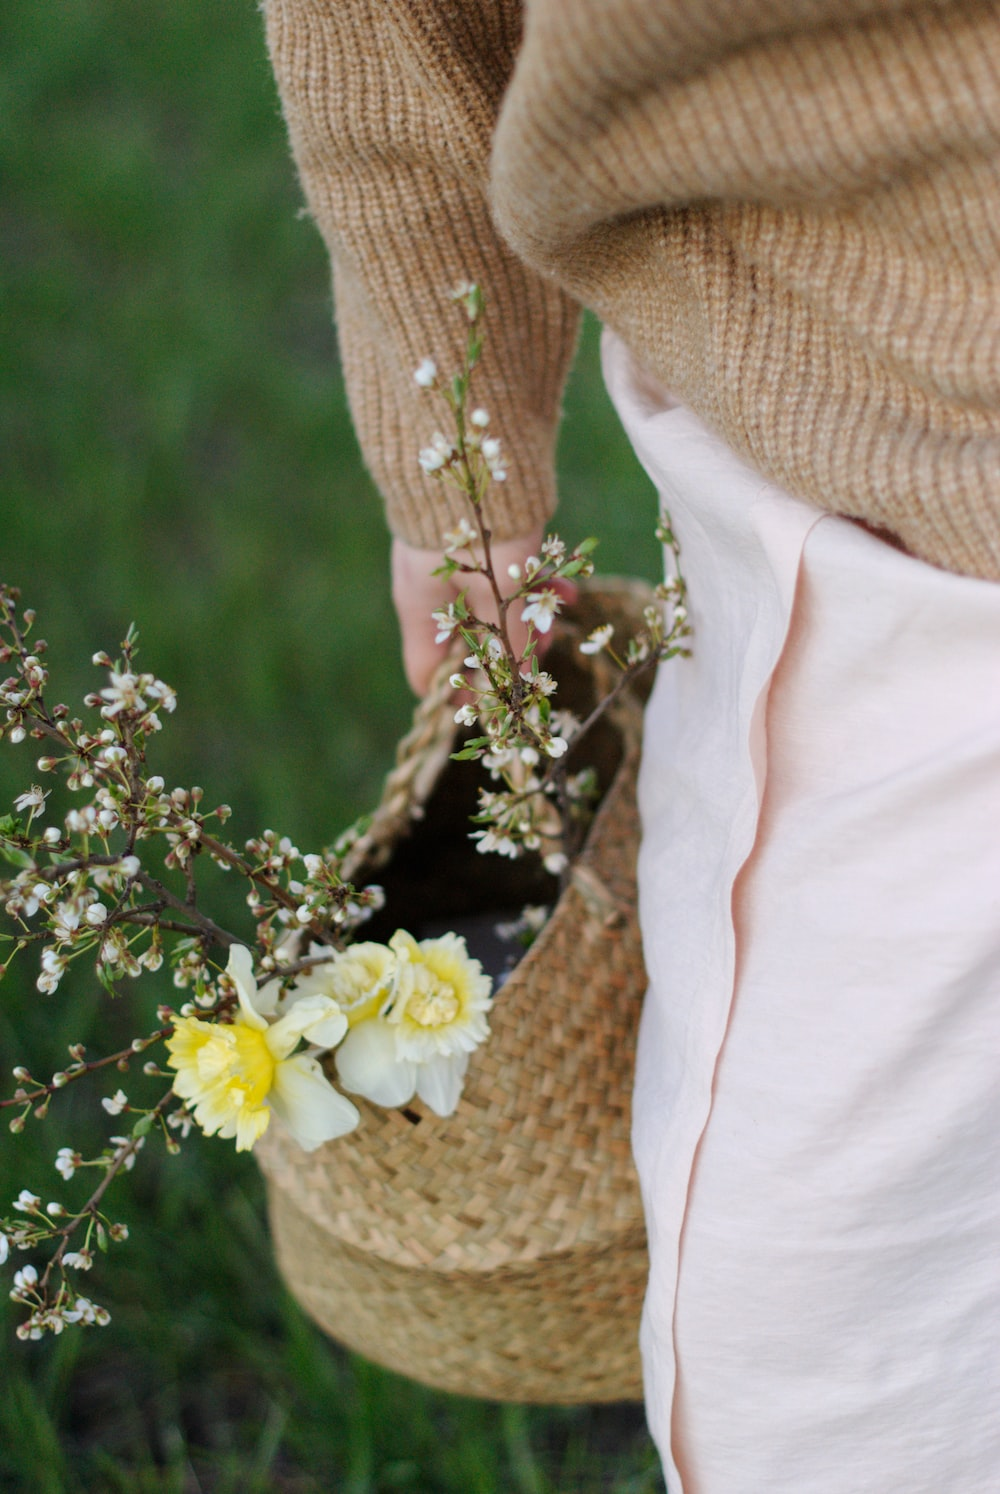 white and yellow flower on brown knit textile